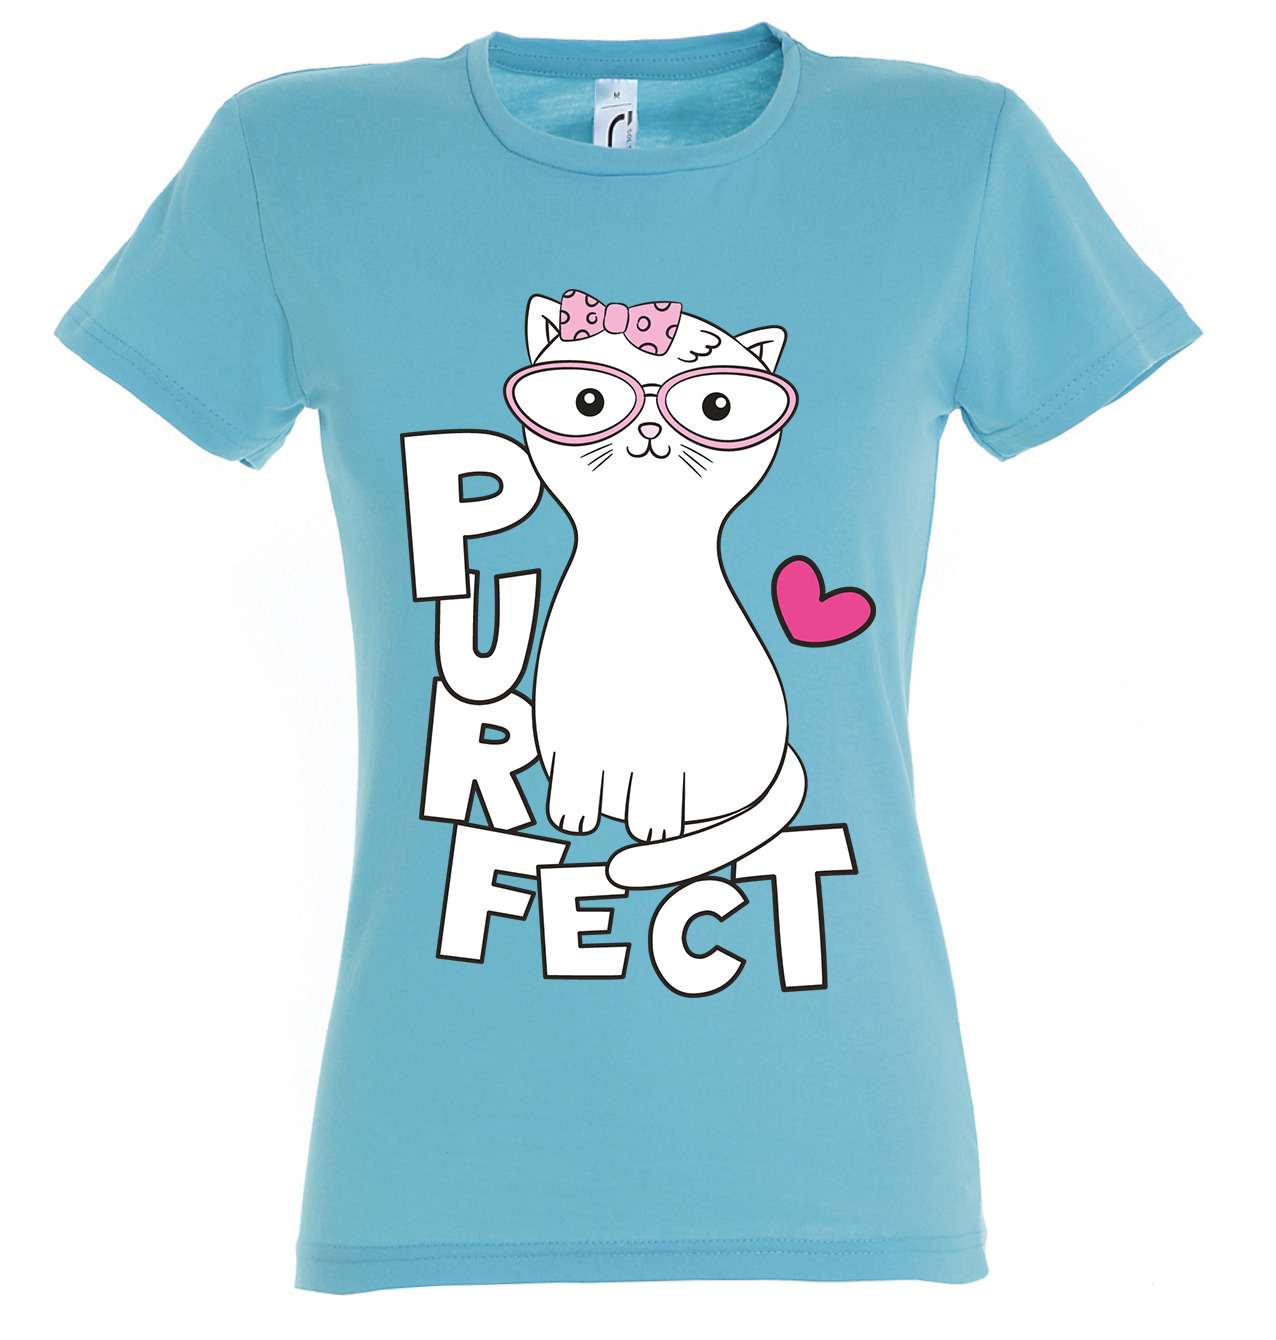 Purfect